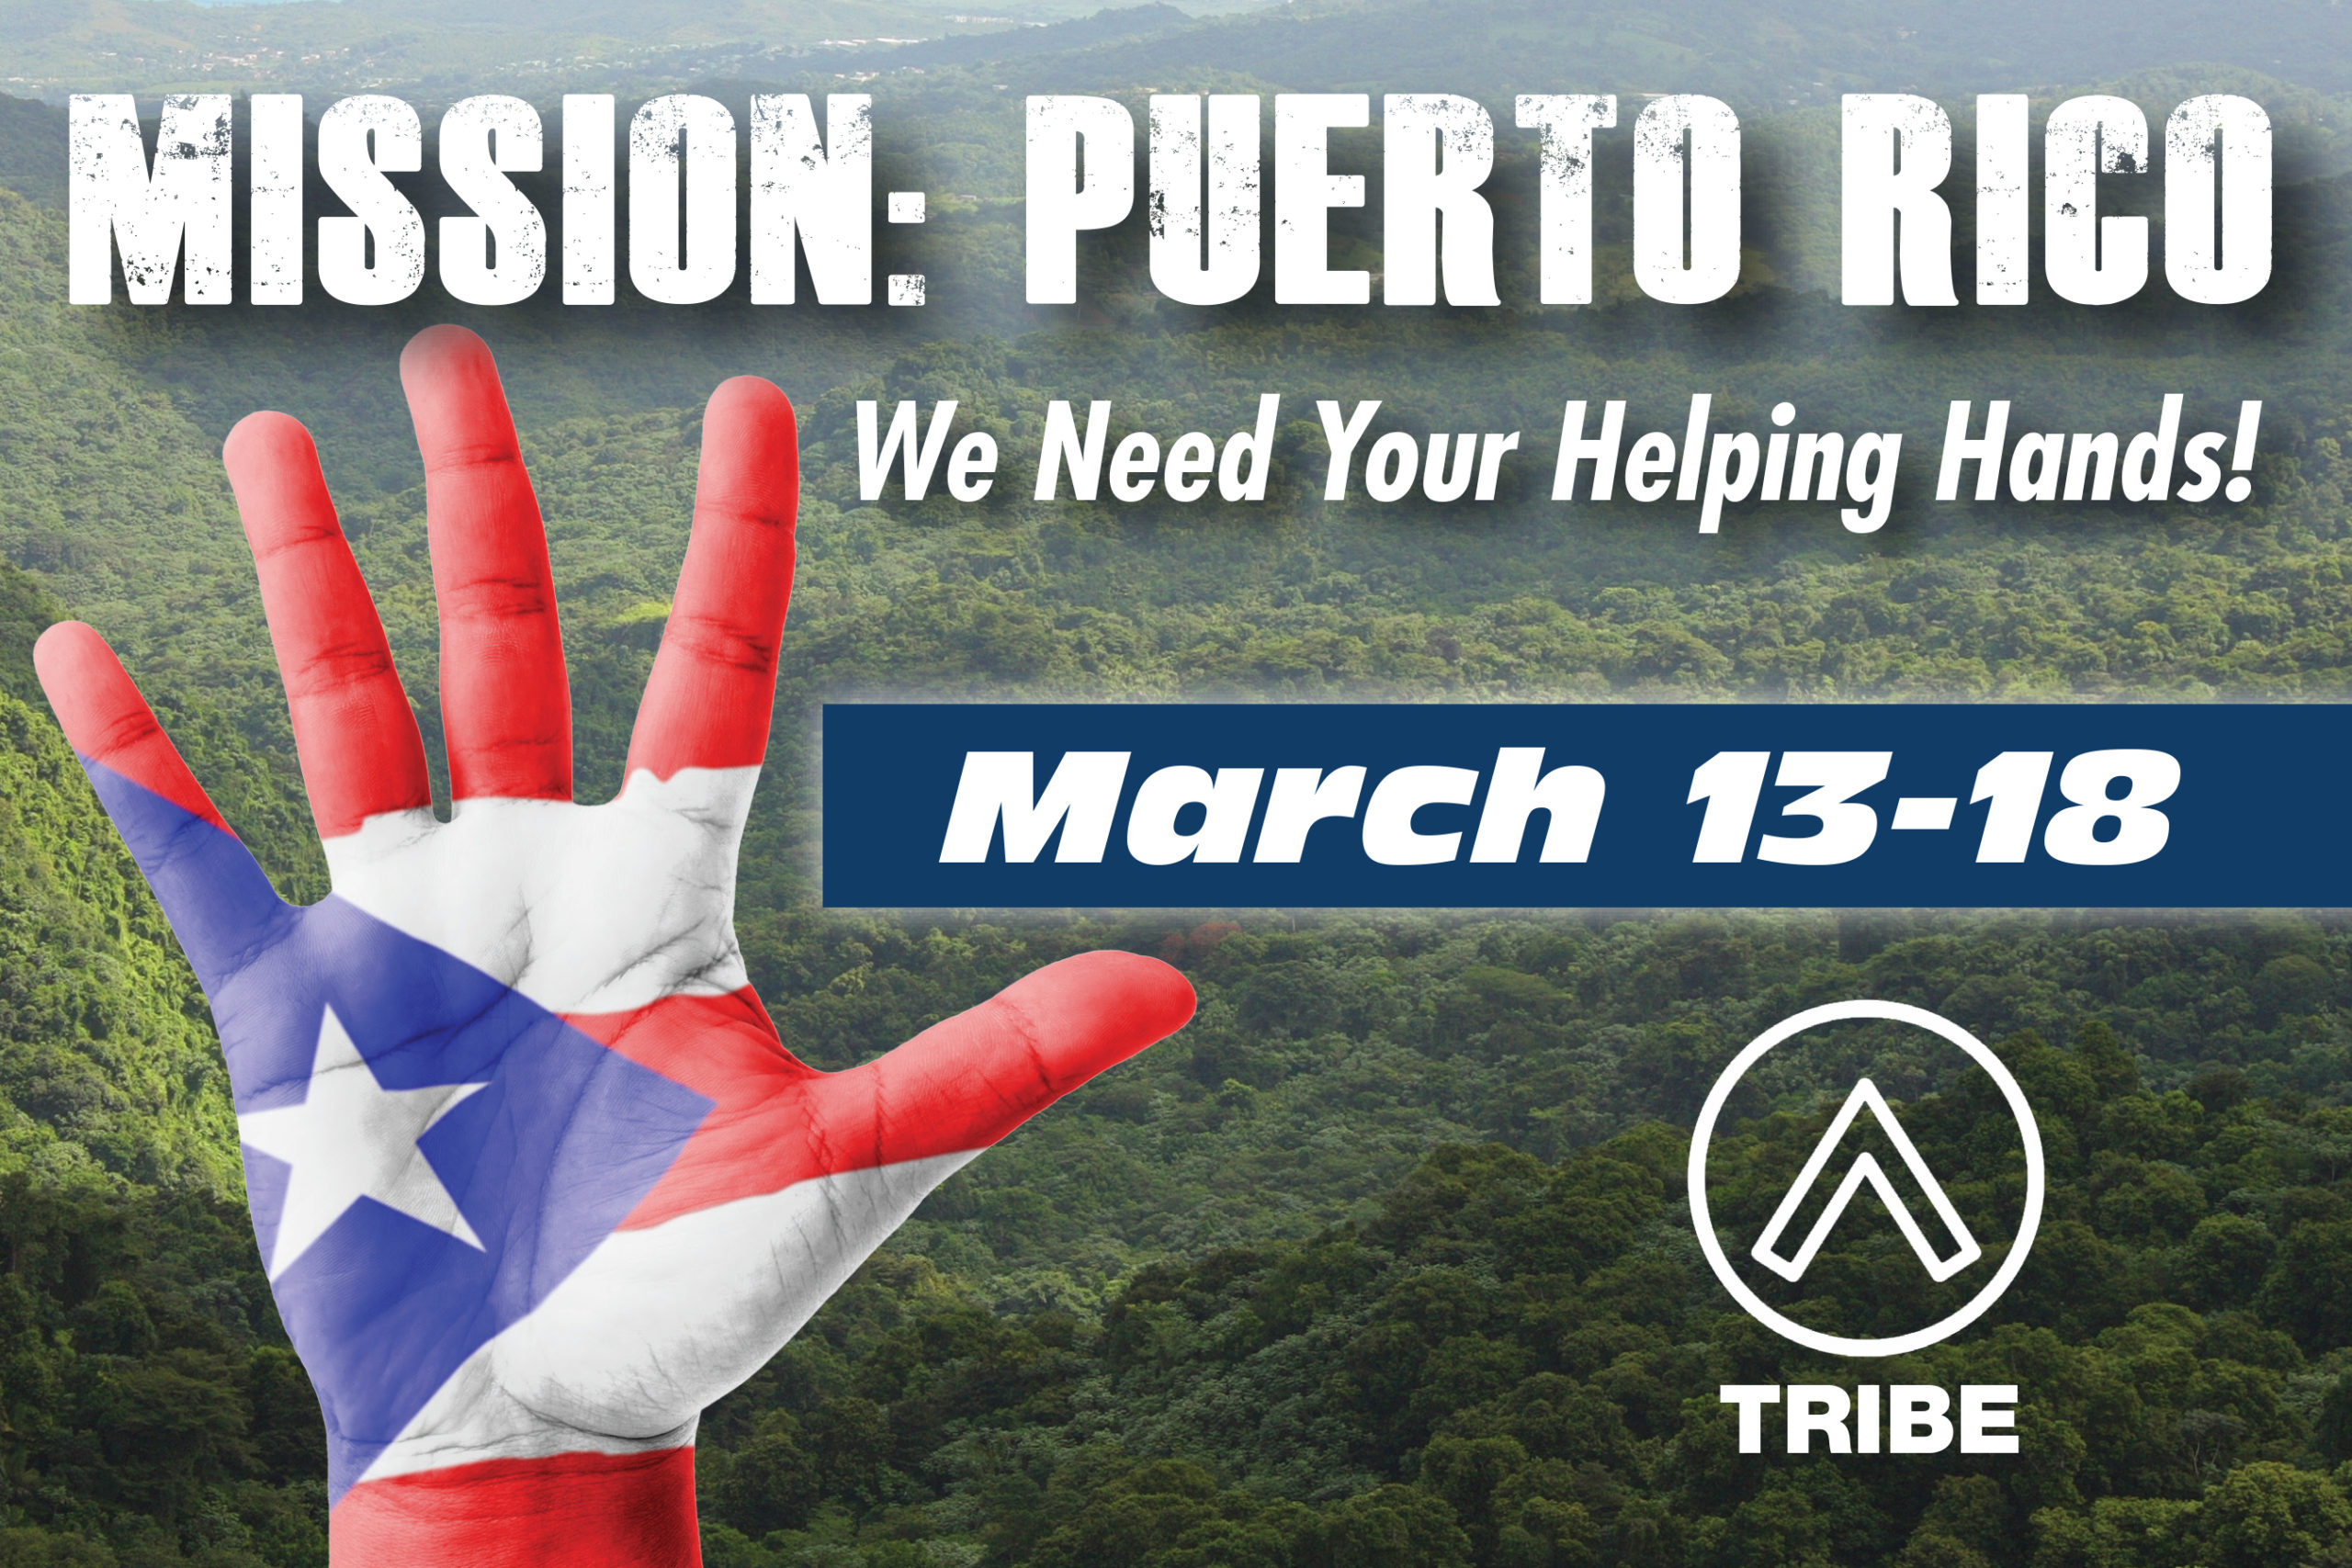 Puerto Rico, mission trip, ponce, hurricane relief, forward edge